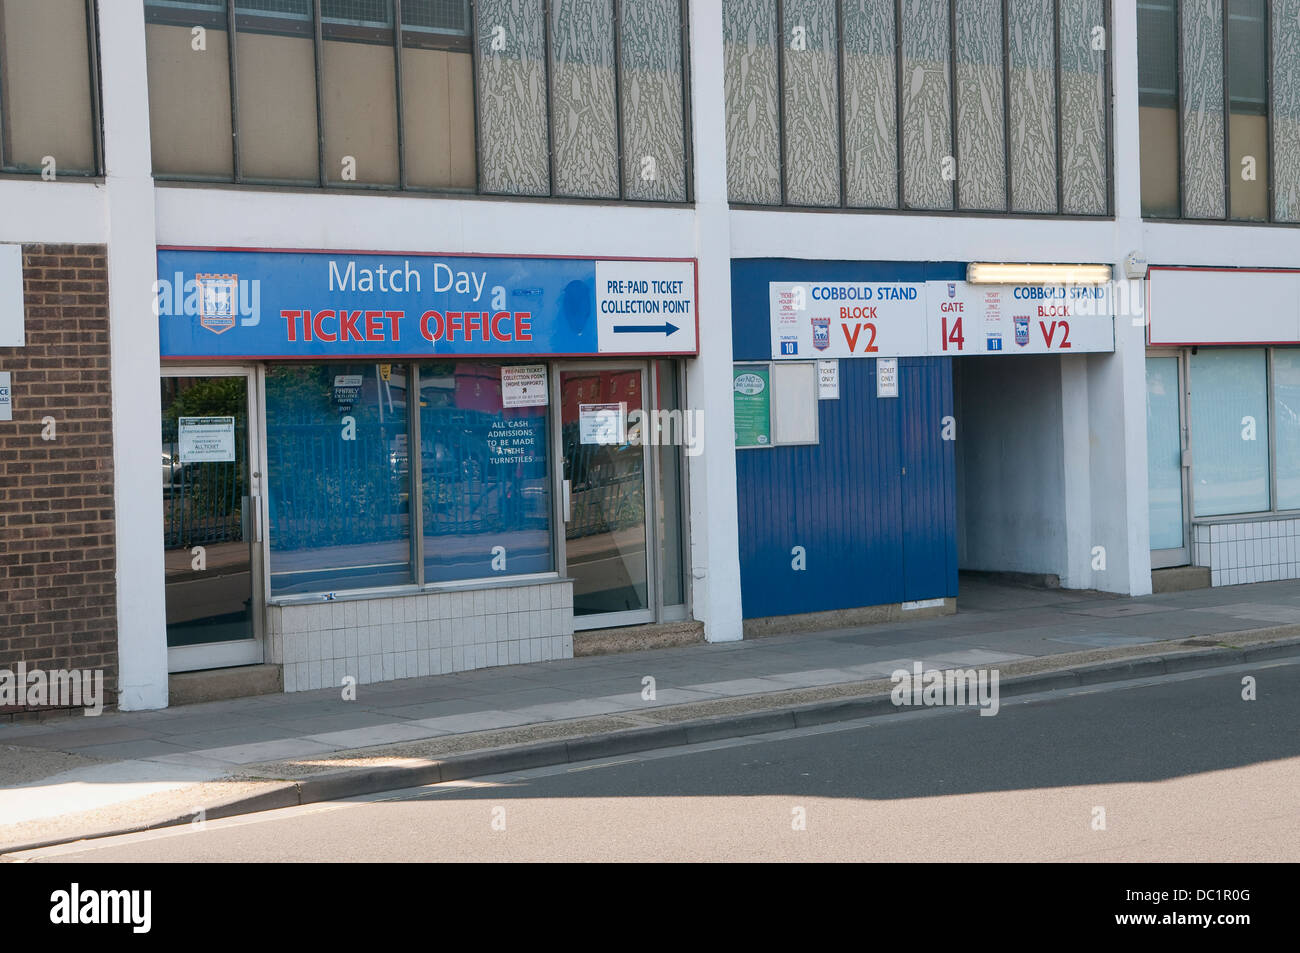 Ticket office of ipswich town football club portman road stadium stock photo royalty free - Cardiff city ticket office number ...